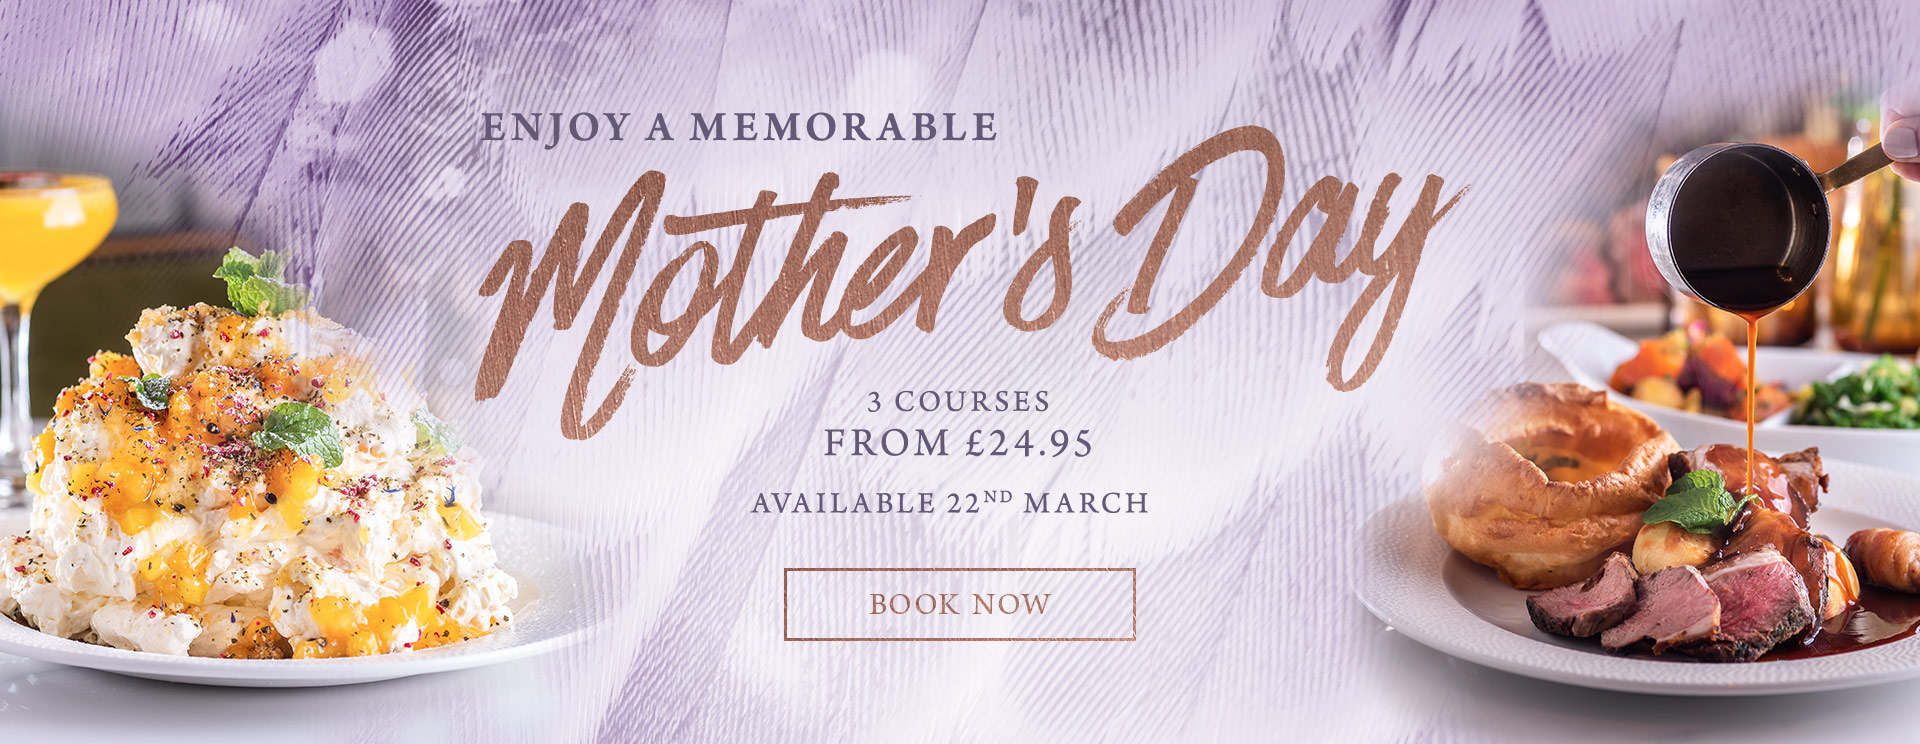 Mother's Day 2019 at The George